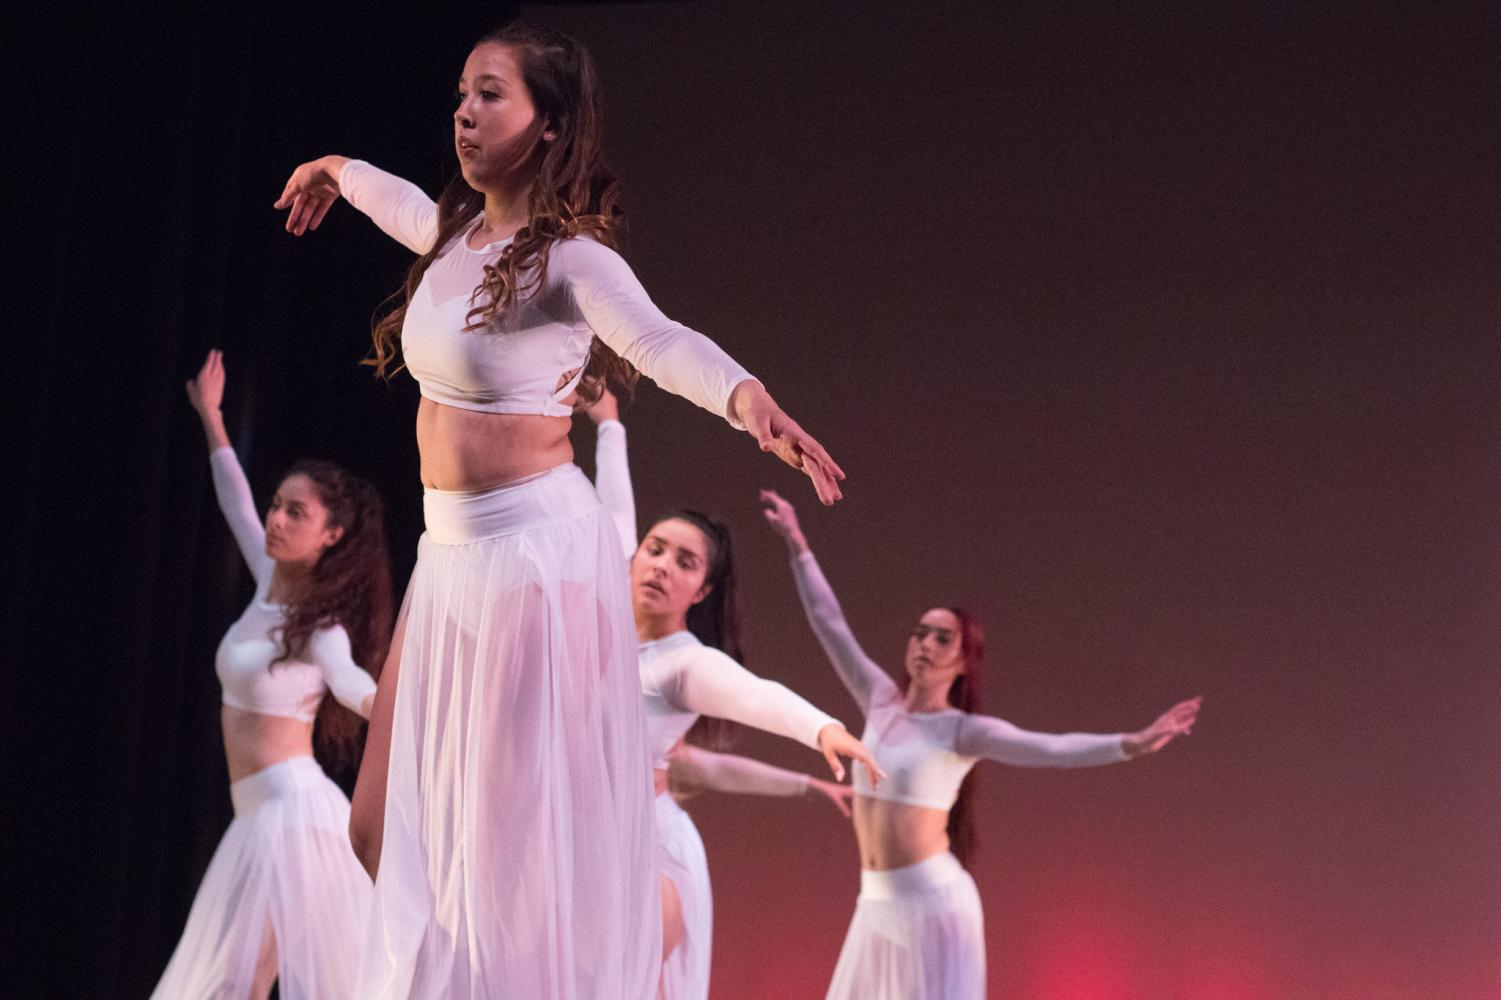 Dancing in the Spotlight: Student dancers twirl, whirl and impress at the 50th Sequoia Dance Show